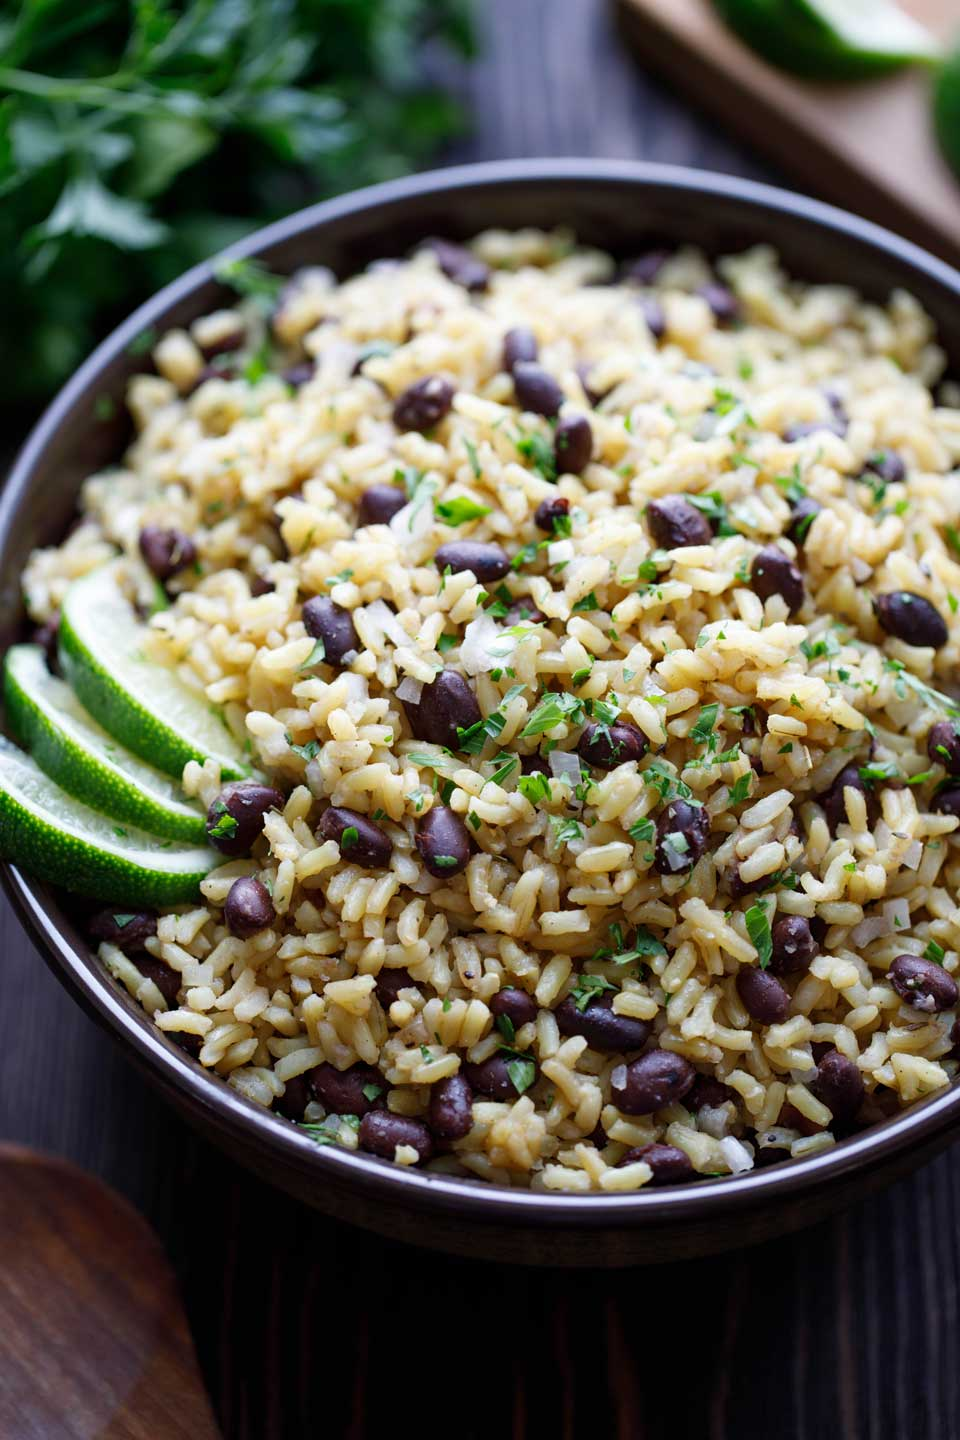 Serving bowl filled with this brown rice and black beans side dish, with lime wedges and parsley in the background